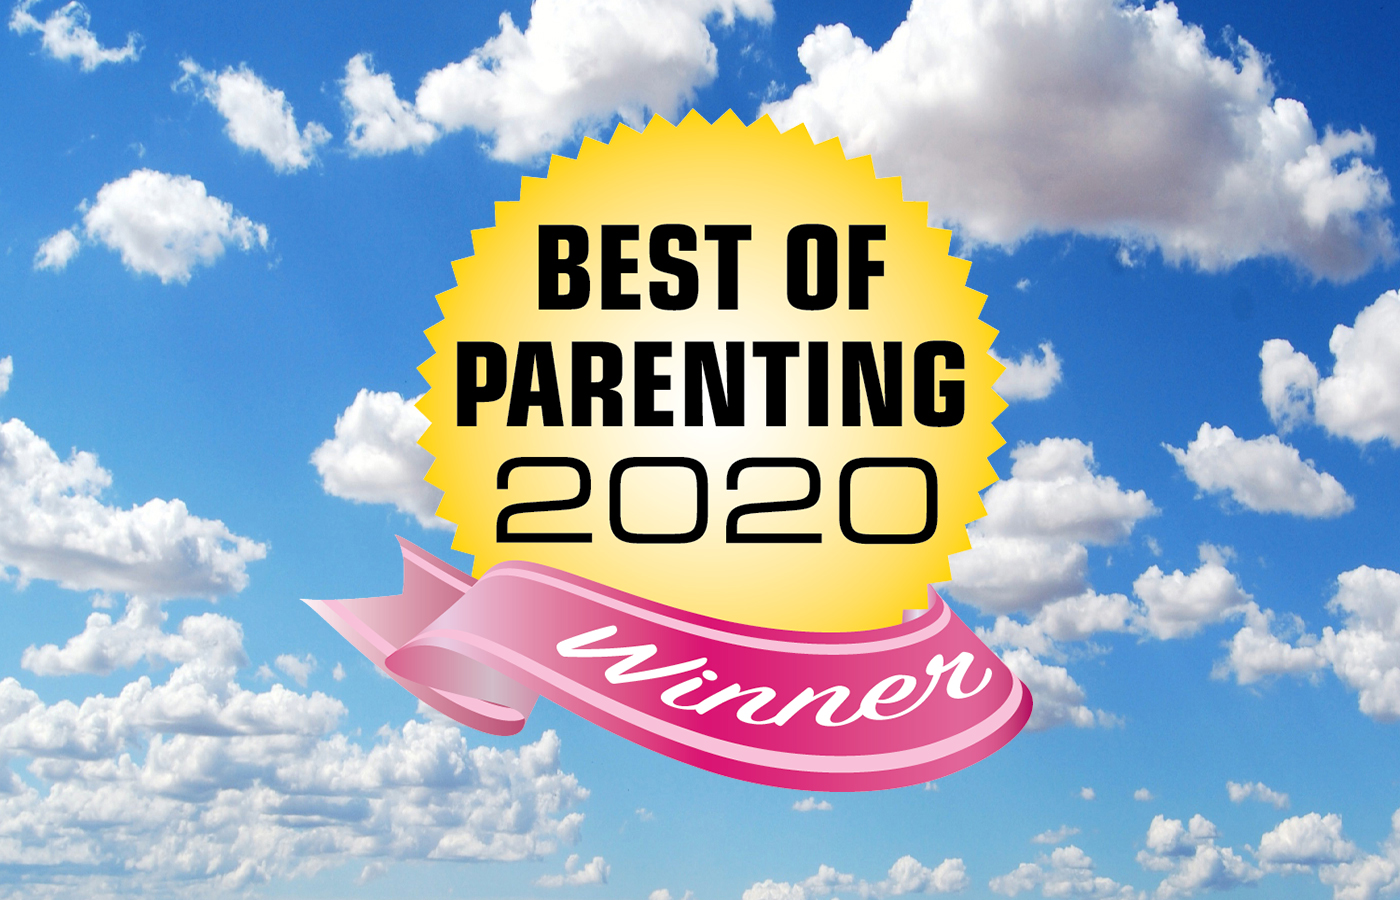 VOTE in the BEST OF PARENTING by August 31!